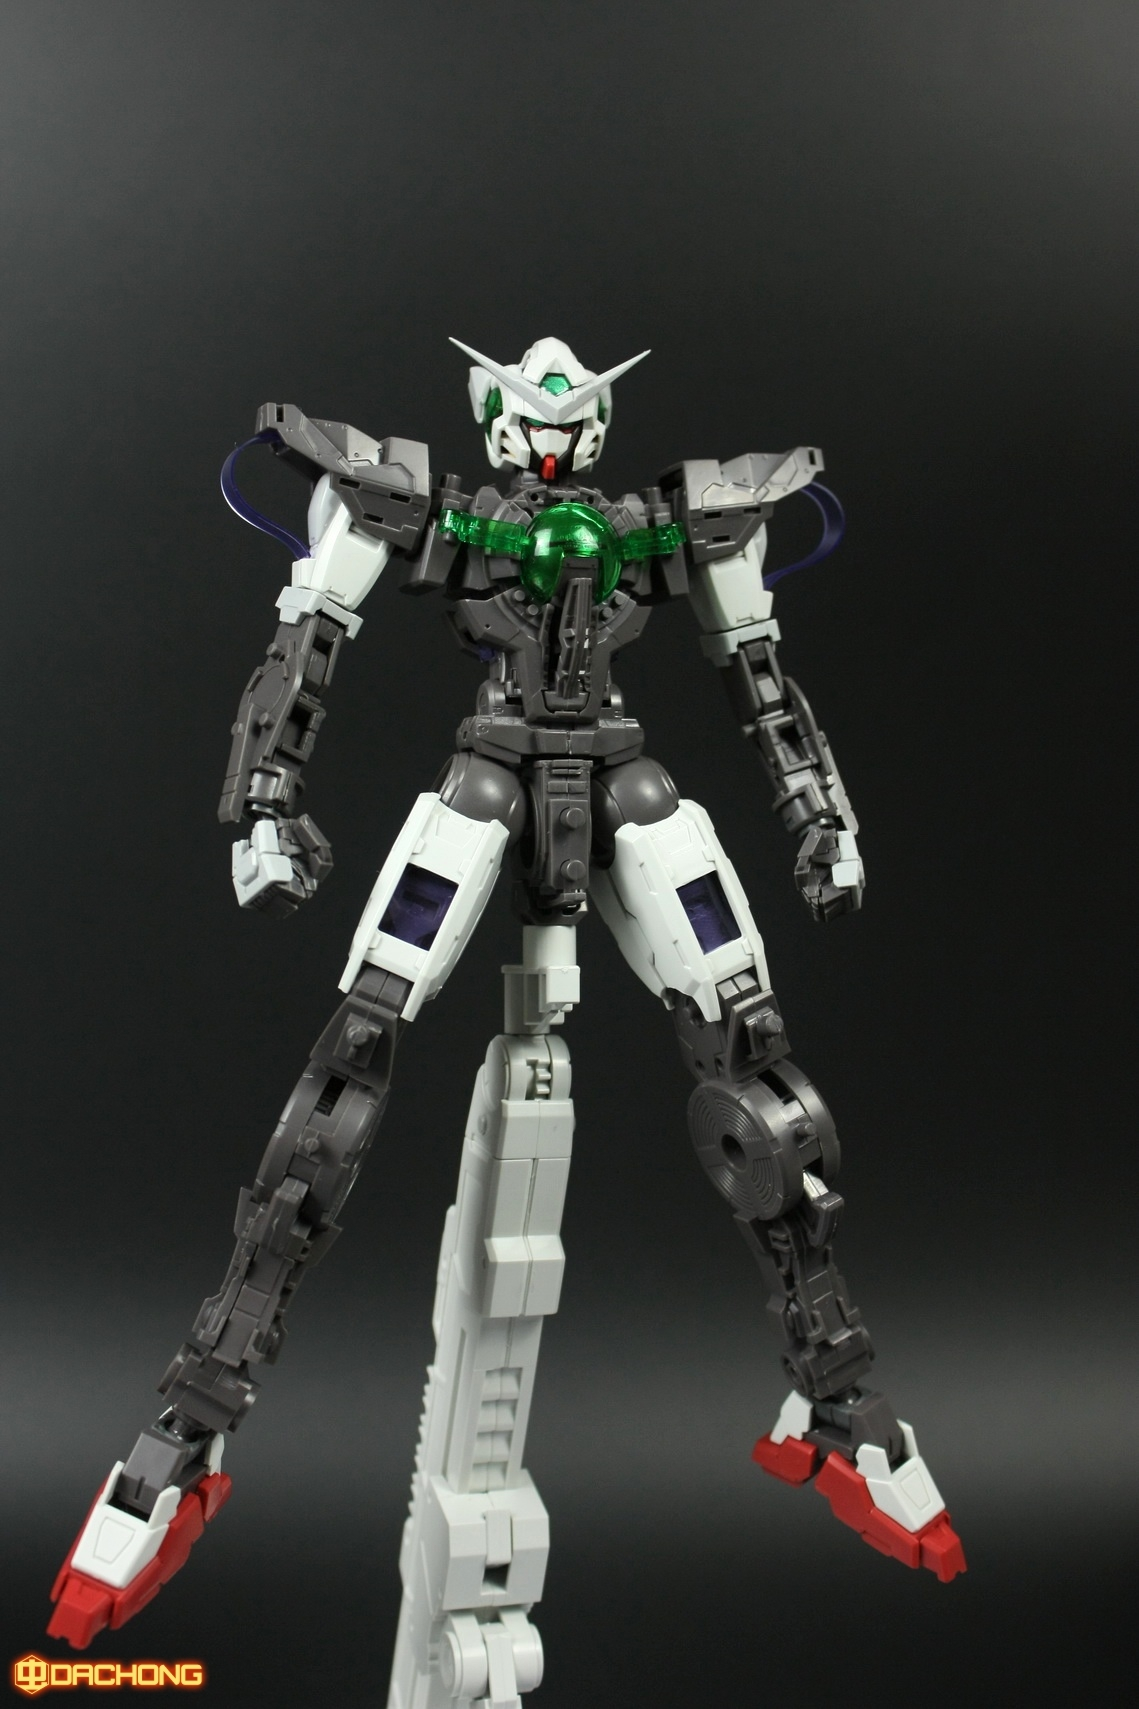 S254_MG_exia_HS_review_inask_040.jpg